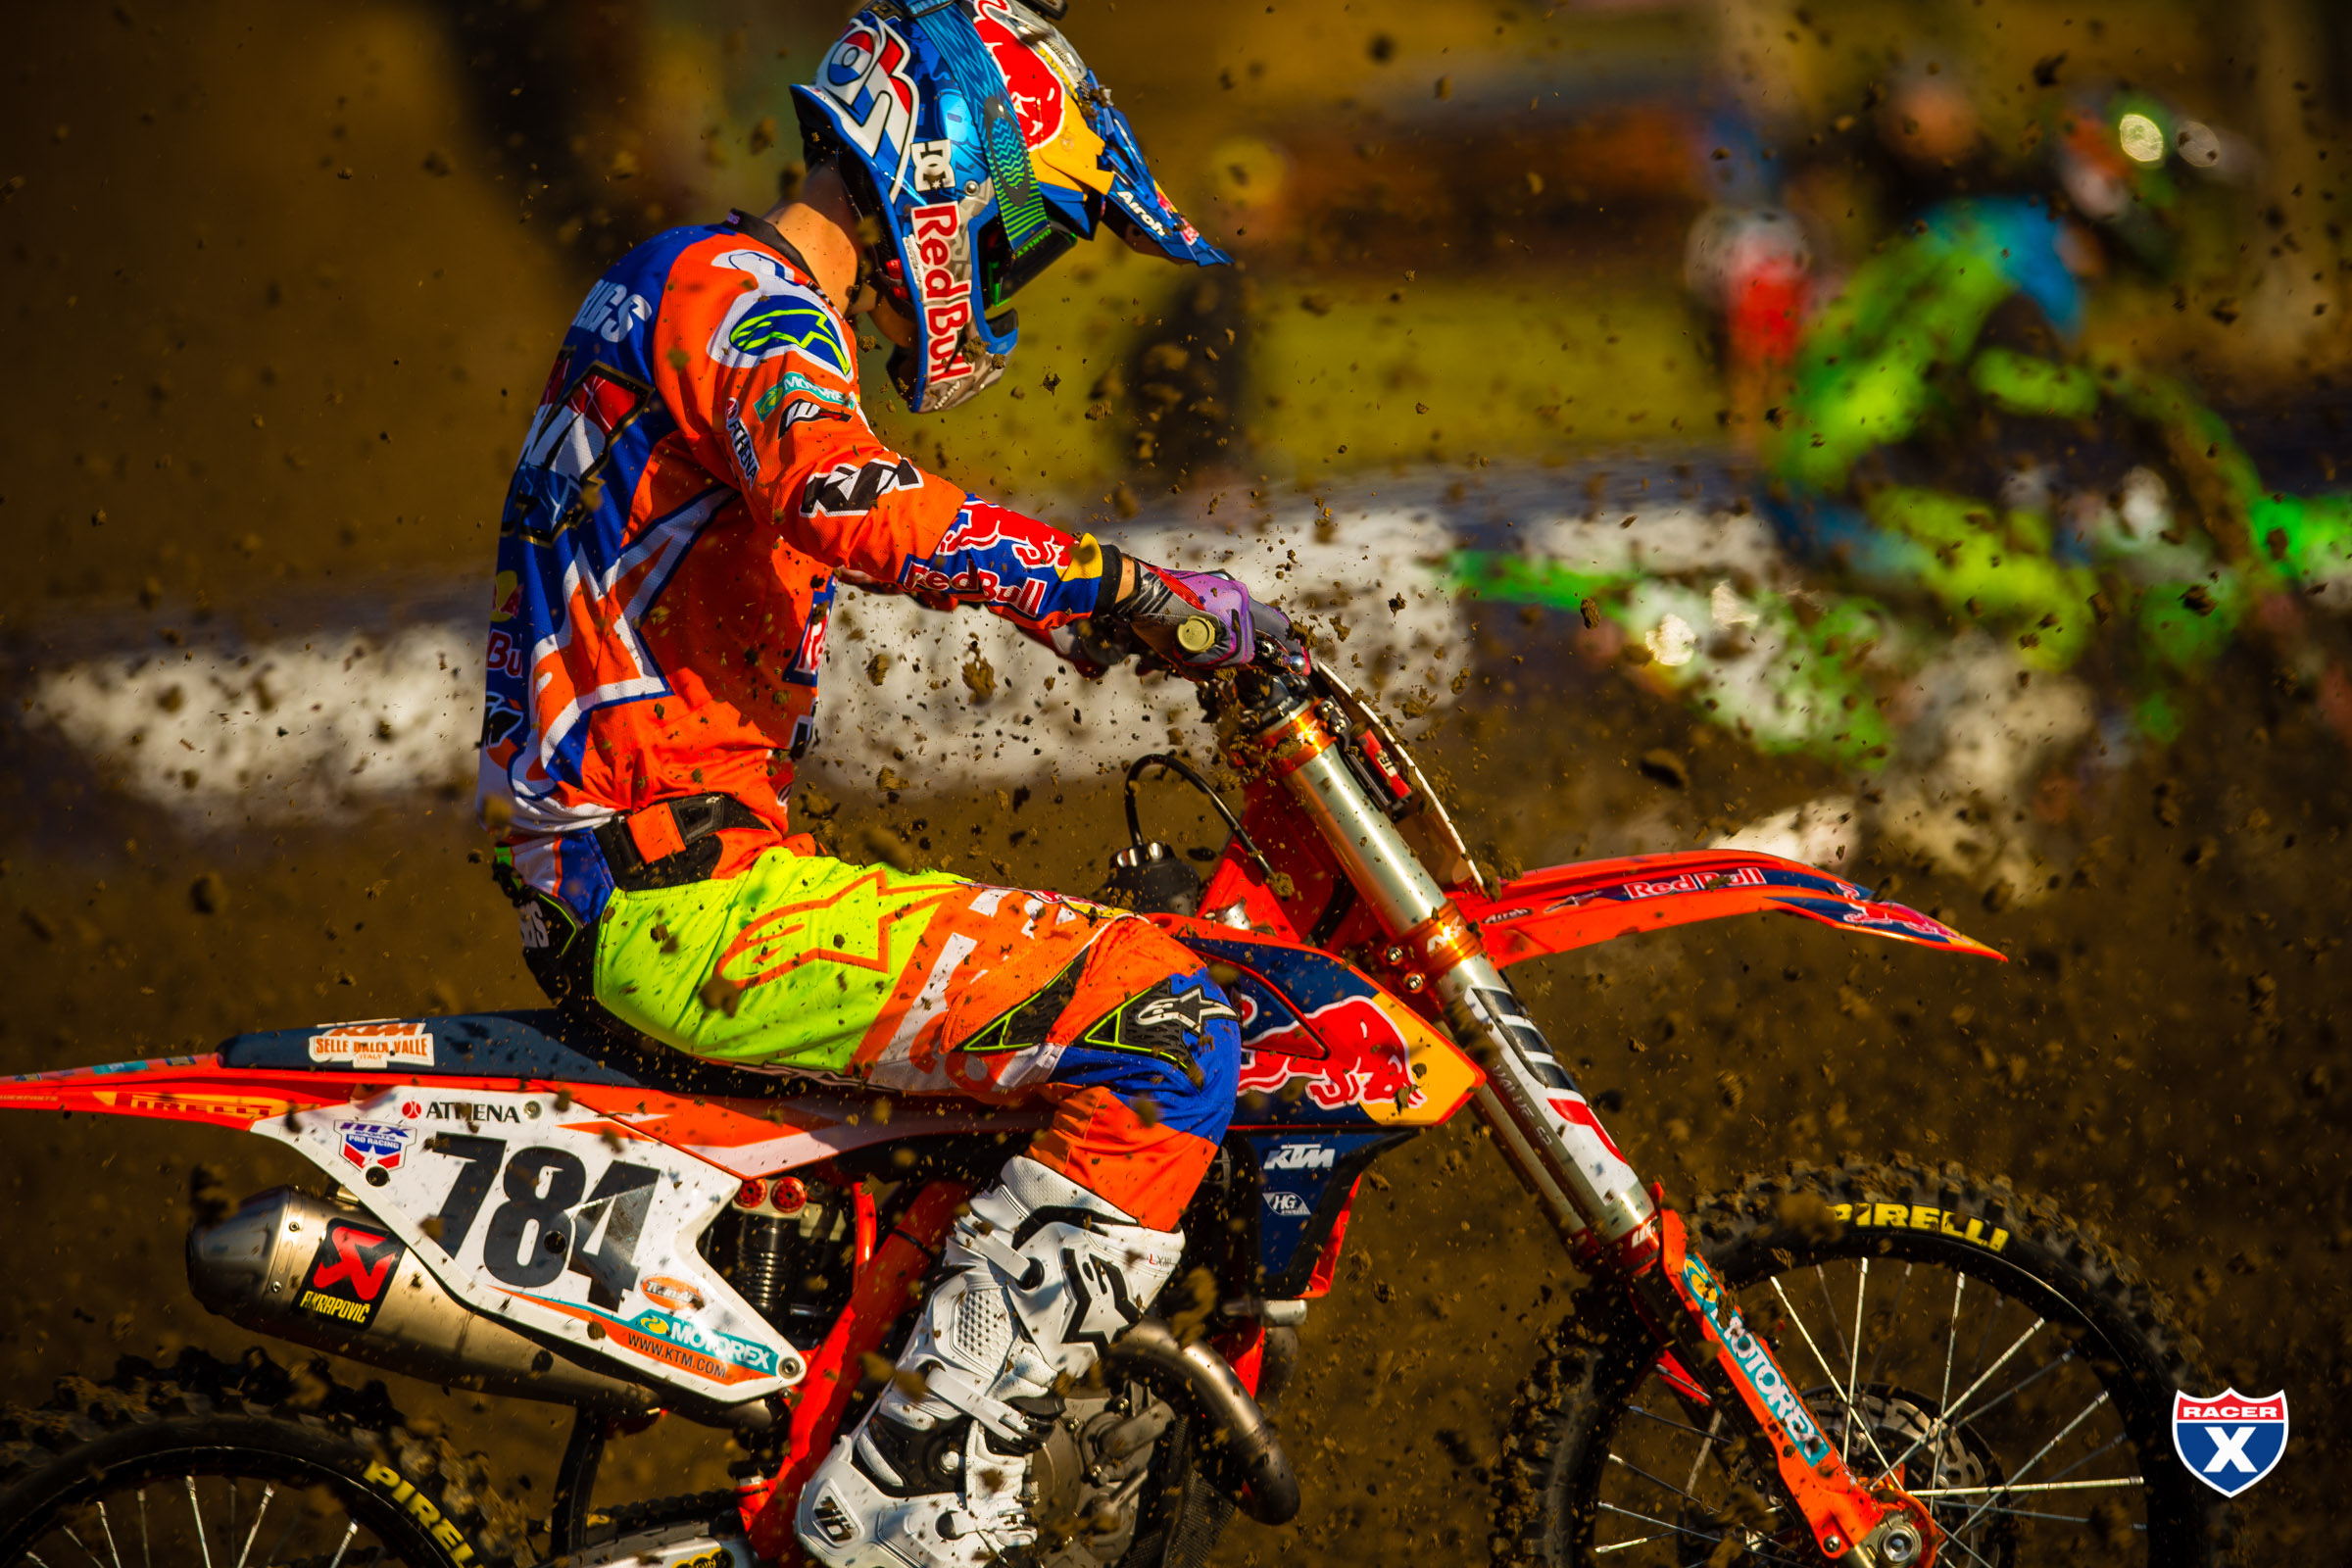 Herlings_MX17_Ironman_JK_1720